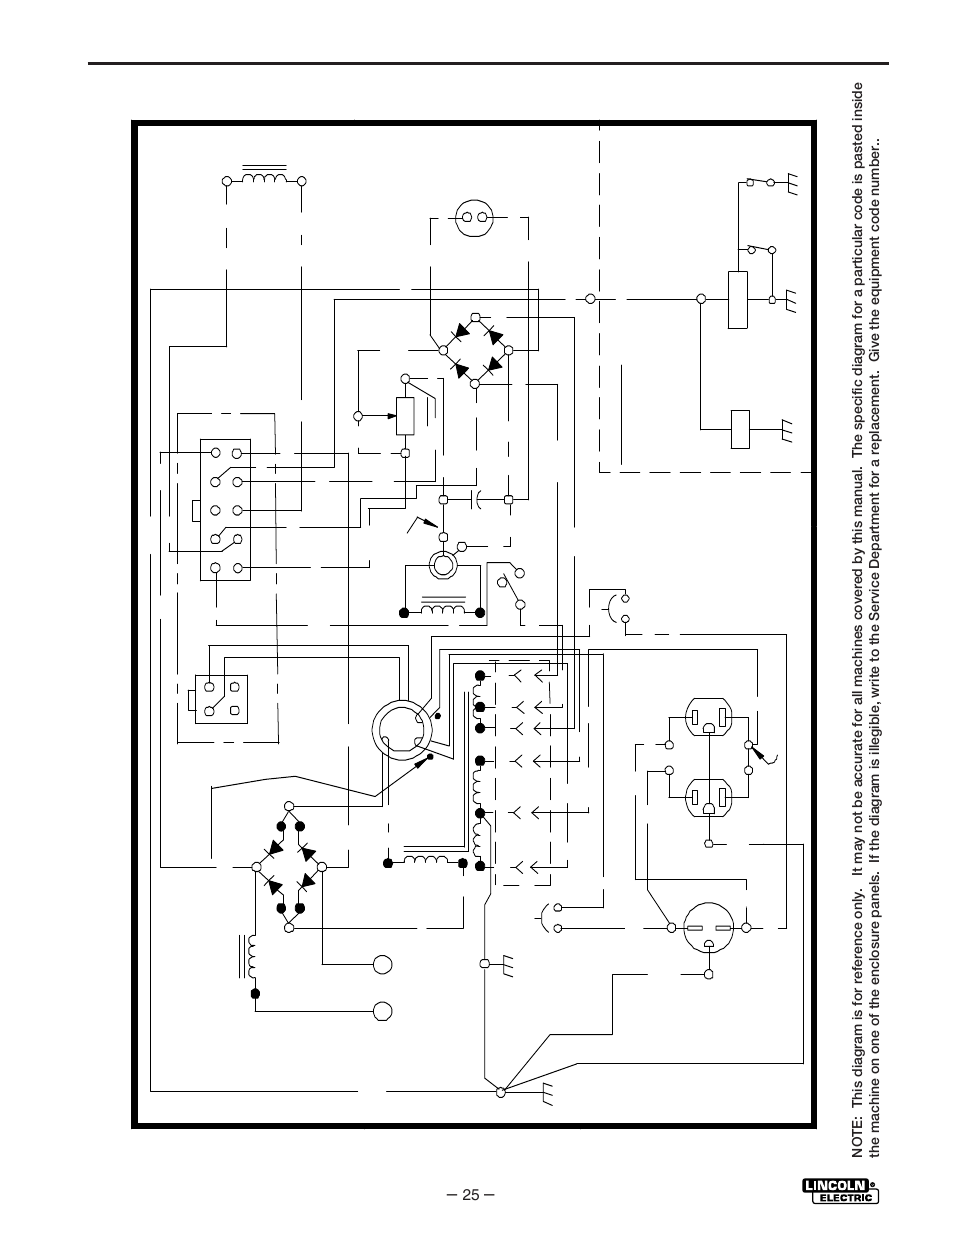 Lincoln Wiring Diagram : Lincoln wiring diagram ls wire harness